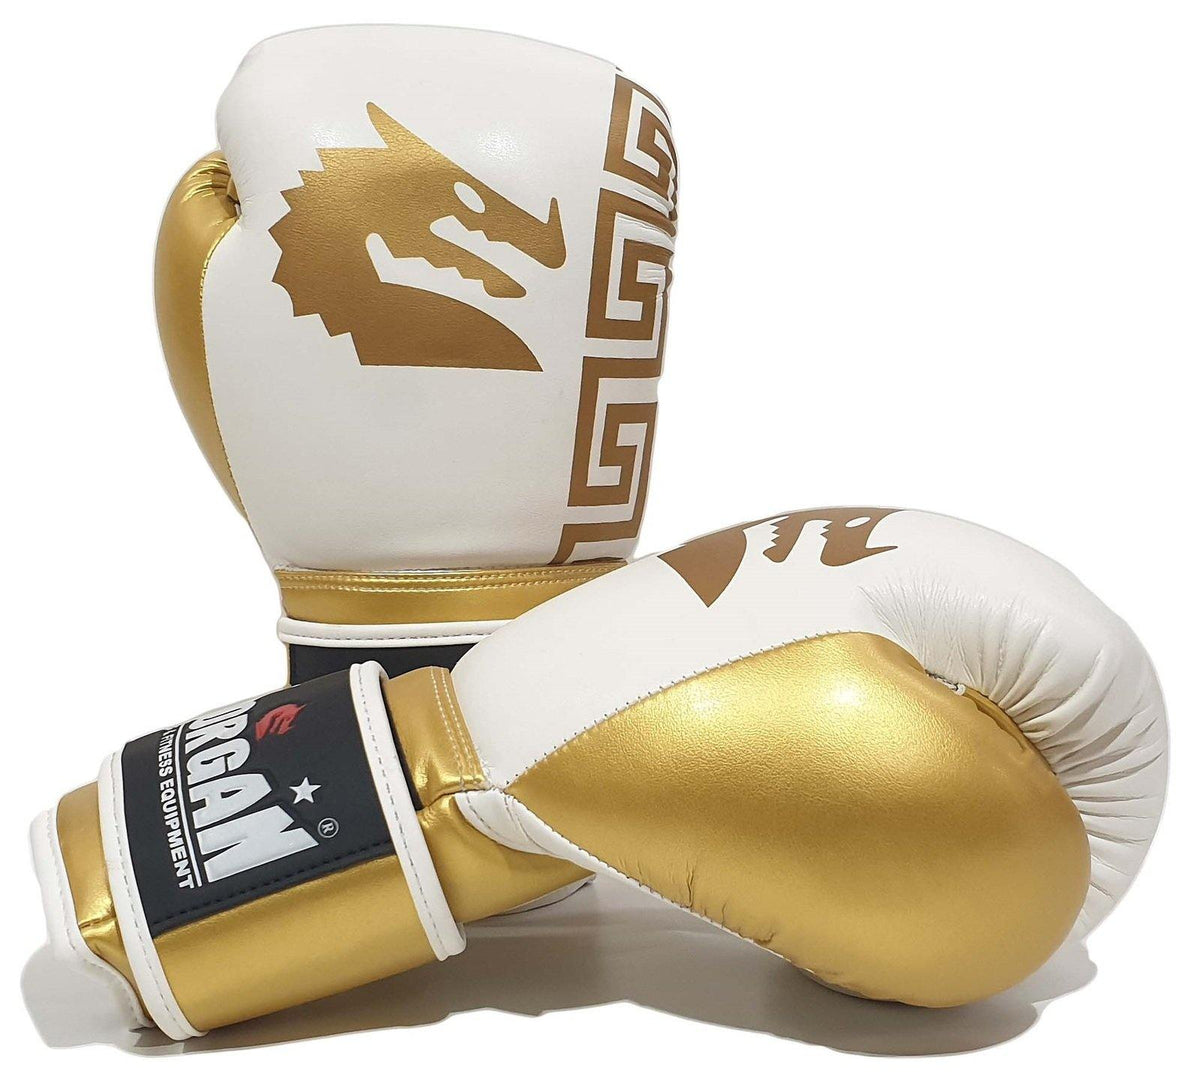 Morgan Sparta Boxing Gloves (12-16 Oz)